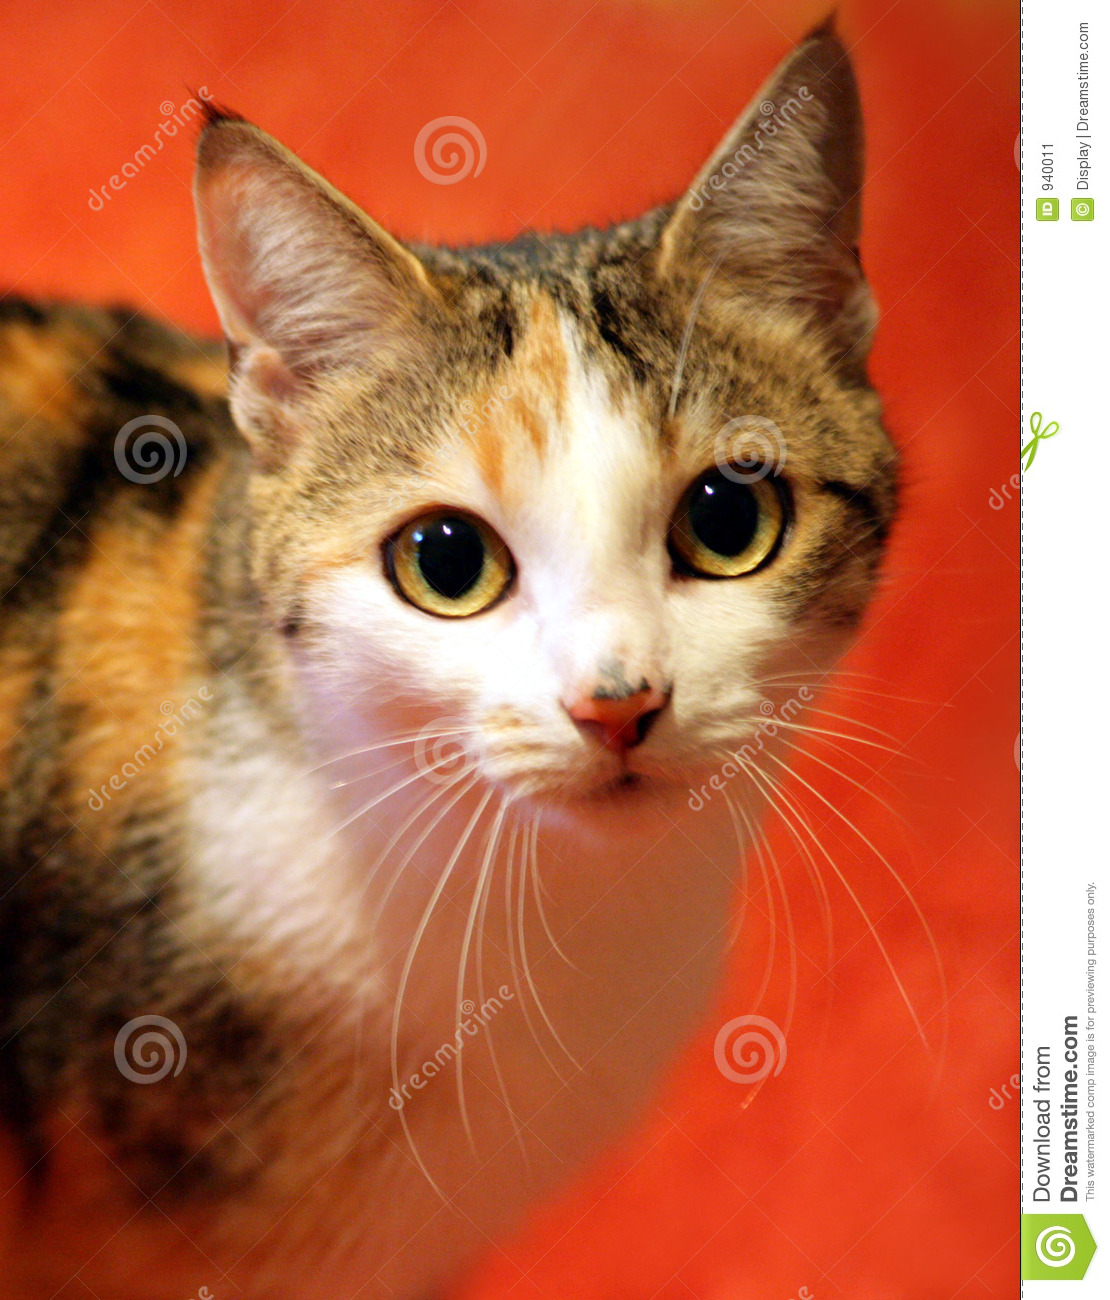 Domestic Cat On A Red Carpet Stock Image